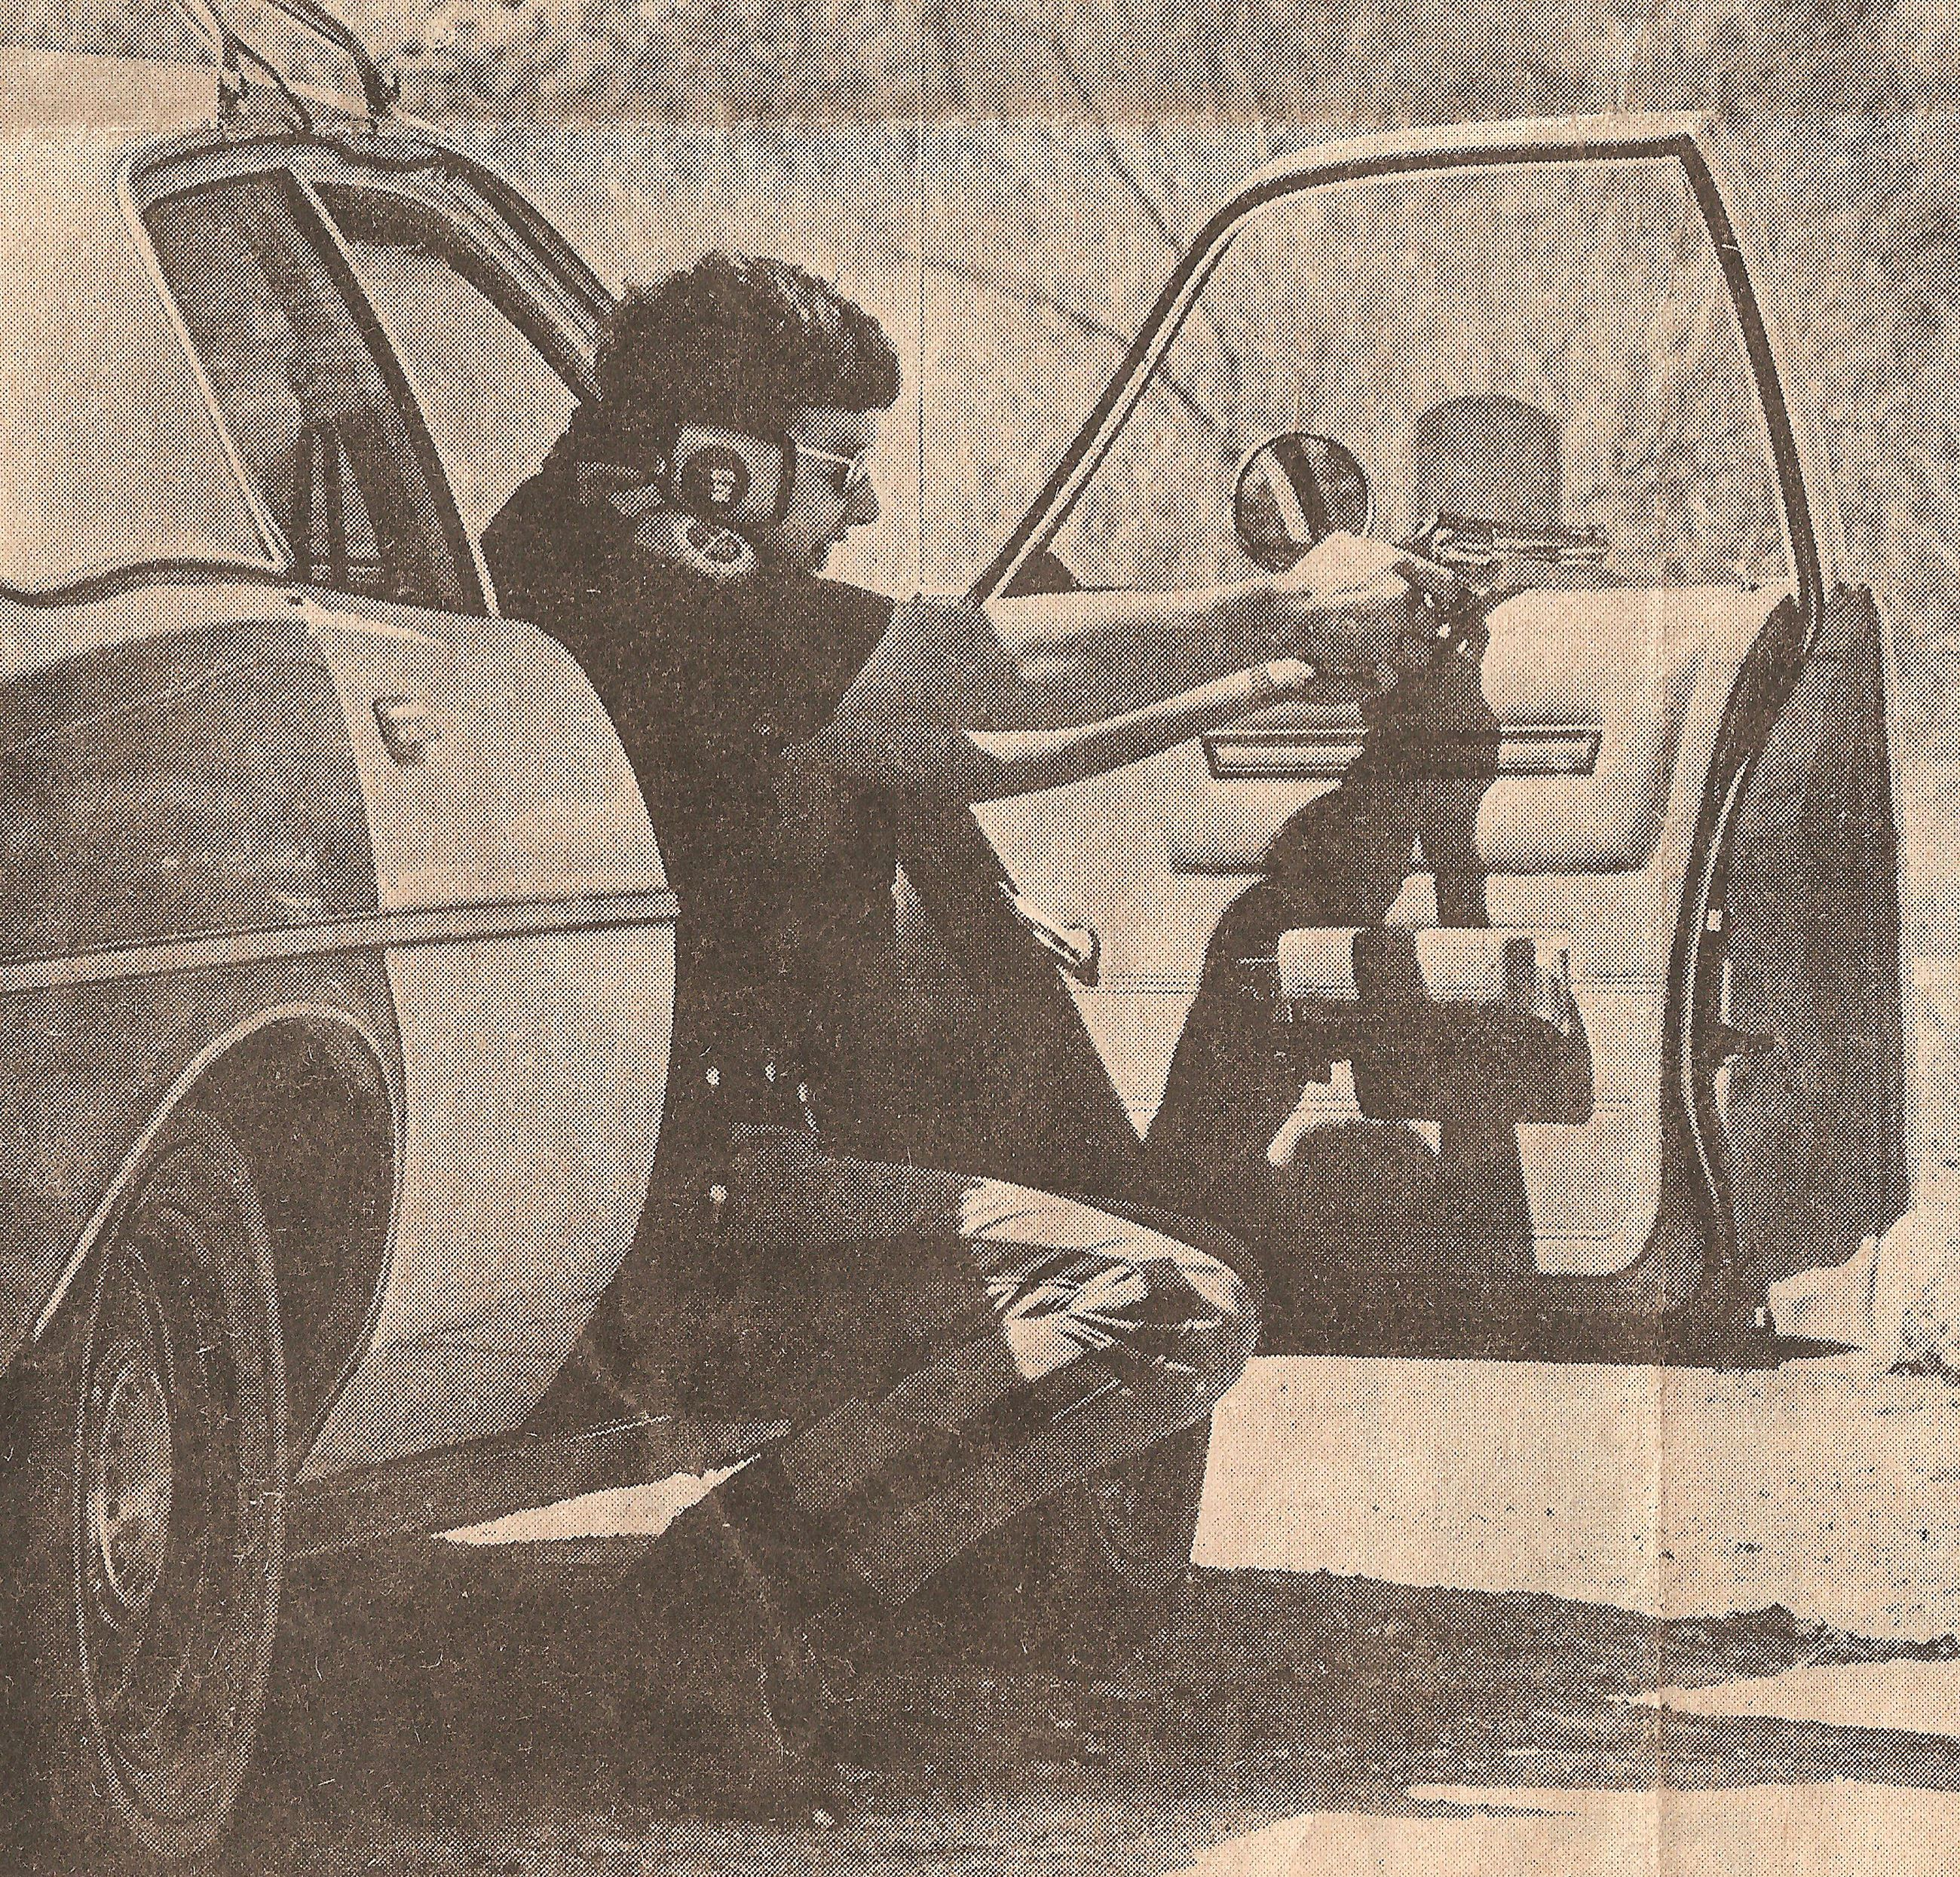 Firearm Training 1979 - 1